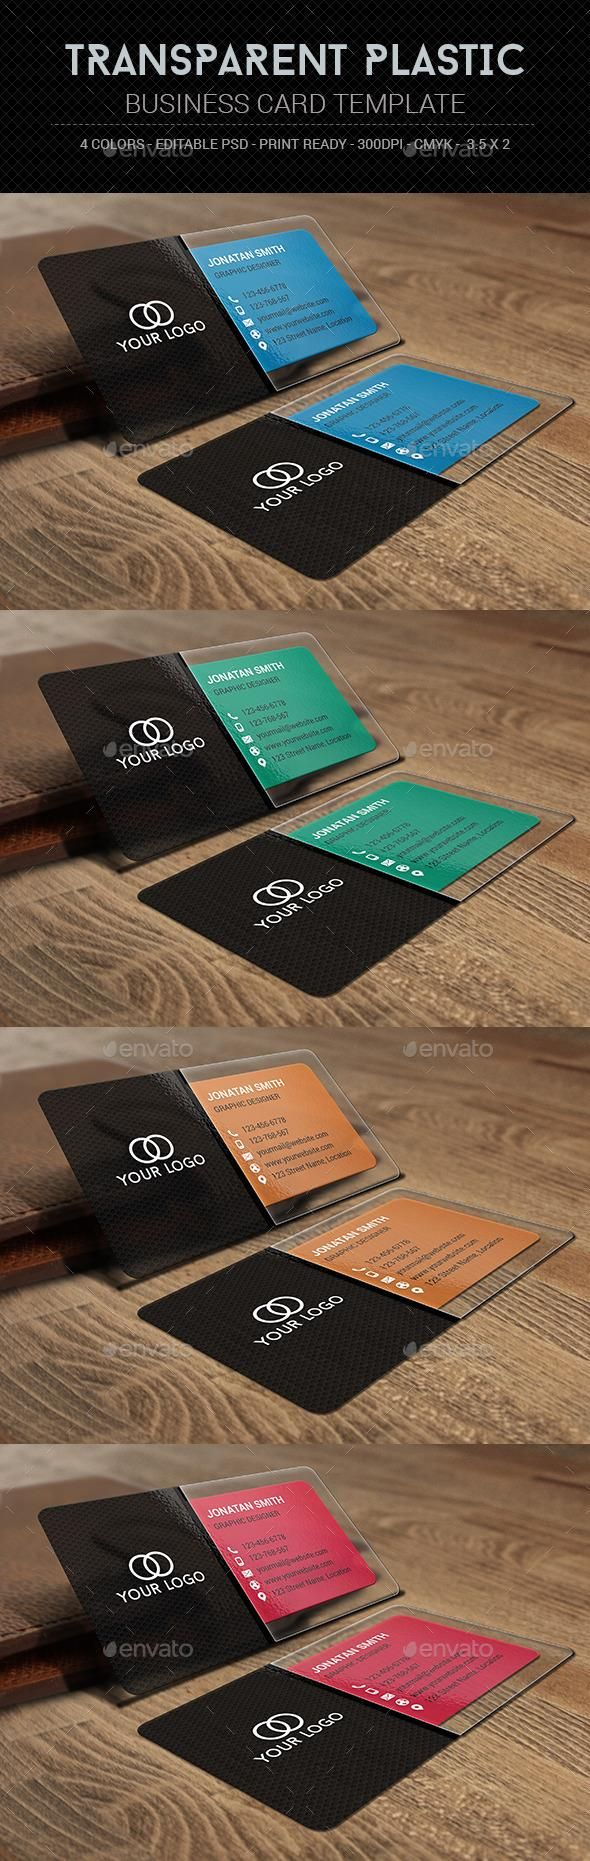 37 best Business cards images on Pinterest | Business card design ...